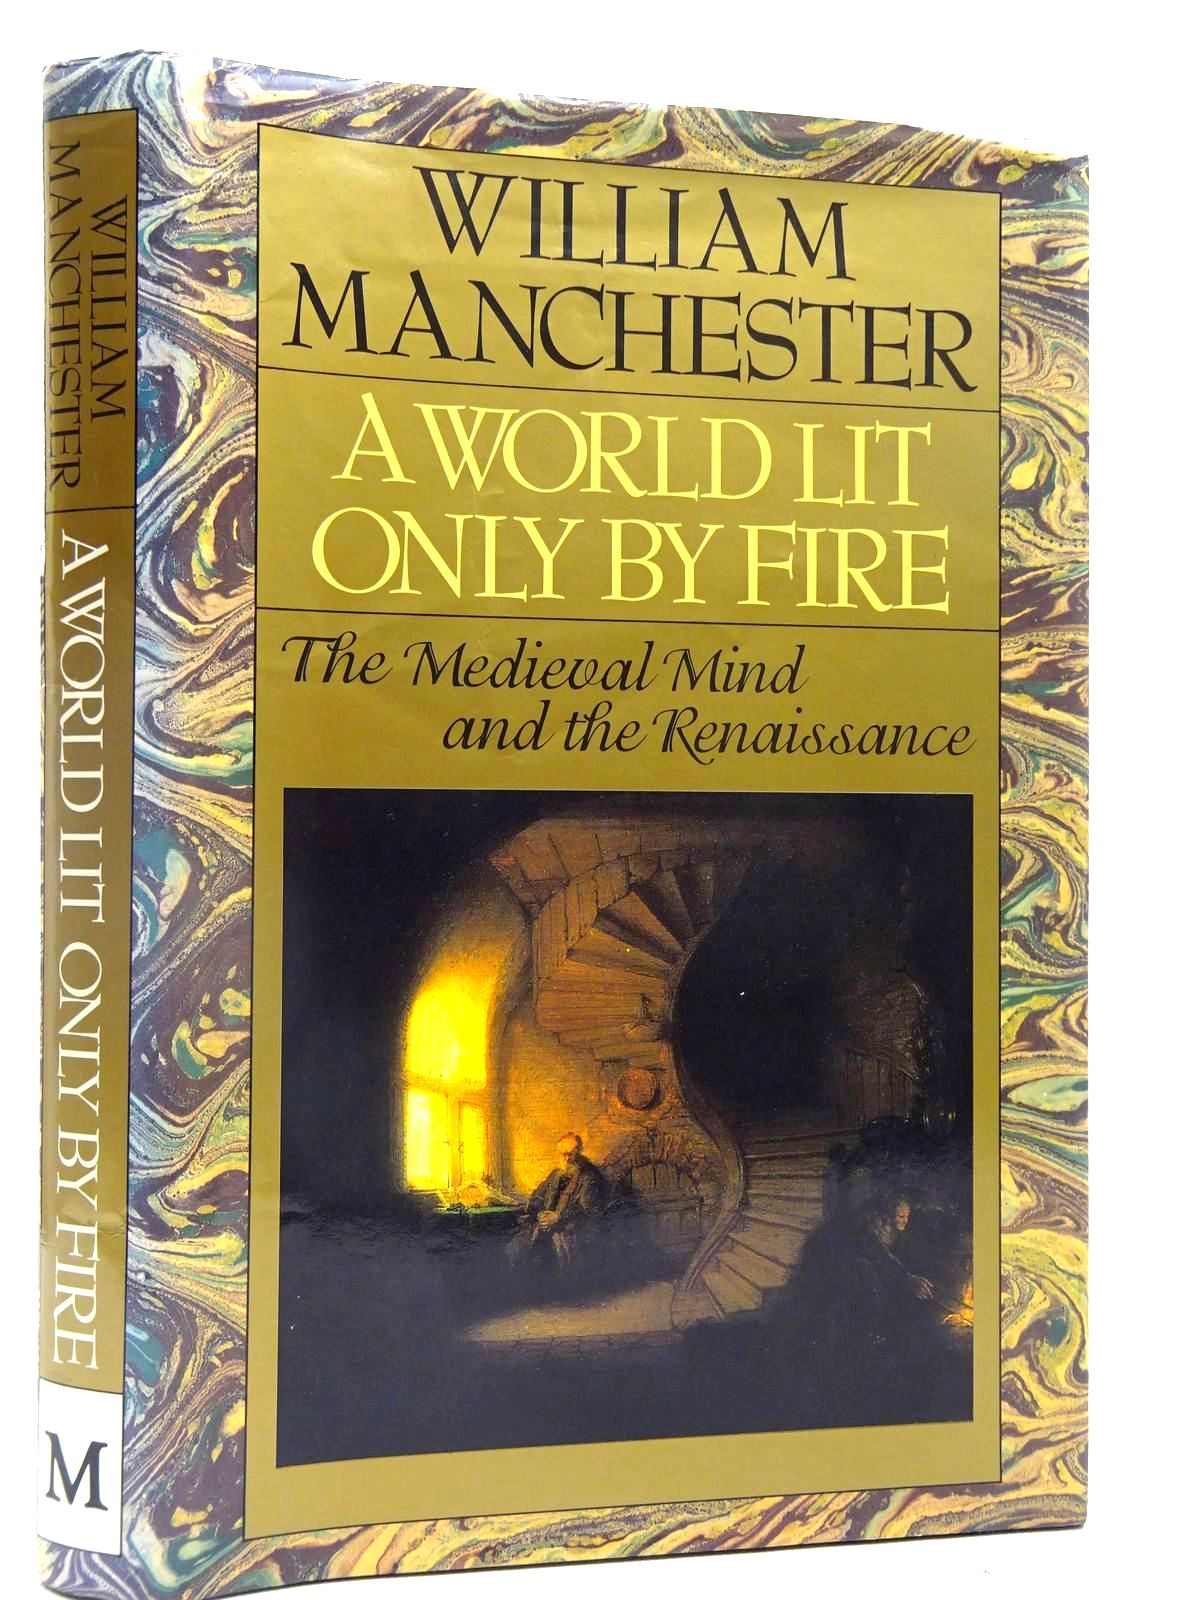 Photo of A WORLD LIT ONLY BY FIRE THE MEDIEVAL MIND AND THE RENAISSANCE written by Manchester, William published by Macmillan London Limited (STOCK CODE: 2128083)  for sale by Stella & Rose's Books